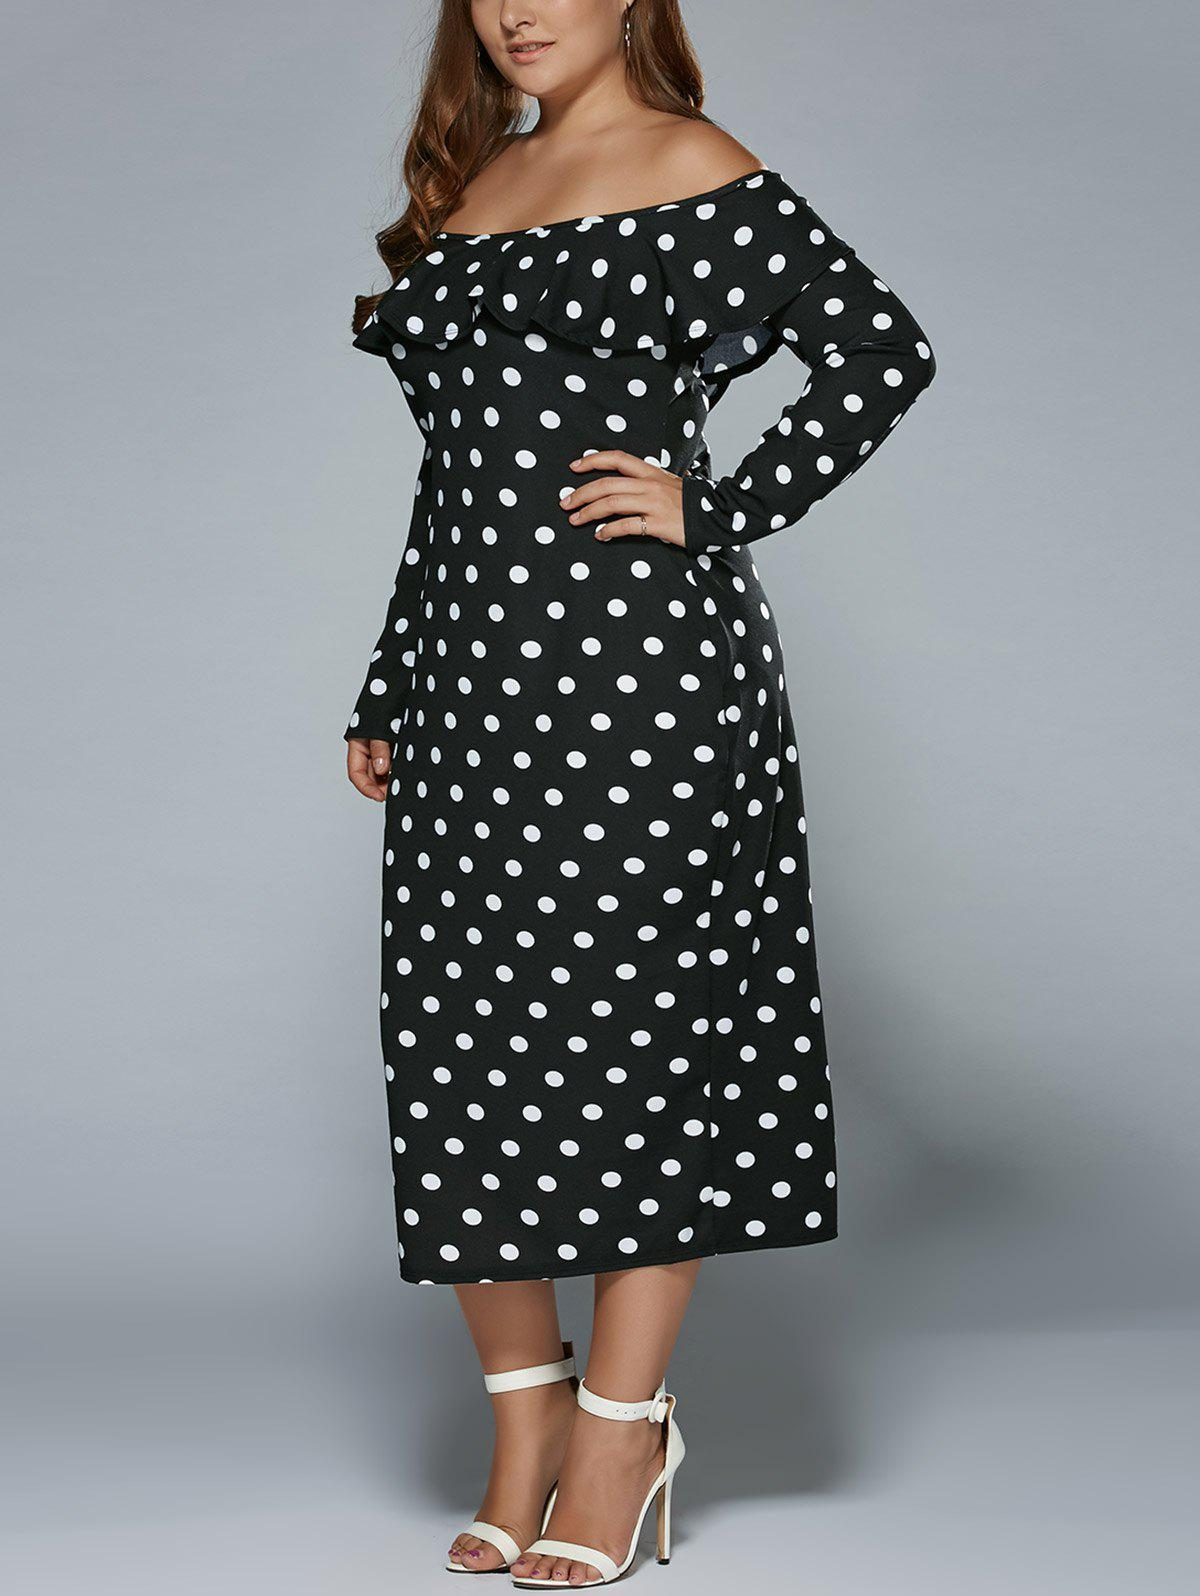 Plus Size Off Shoulder Long Sleeve Polka Dot Midi DressWOMEN<br><br>Size: 2XL; Color: BLACK; Style: Brief; Material: Polyester; Silhouette: Sheath; Dresses Length: Mid-Calf; Neckline: Off The Shoulder; Sleeve Length: Long Sleeves; Pattern Type: Polka Dot; With Belt: No; Season: Spring,Summer; Weight: 0.420kg; Package Contents: 1 x Dress;